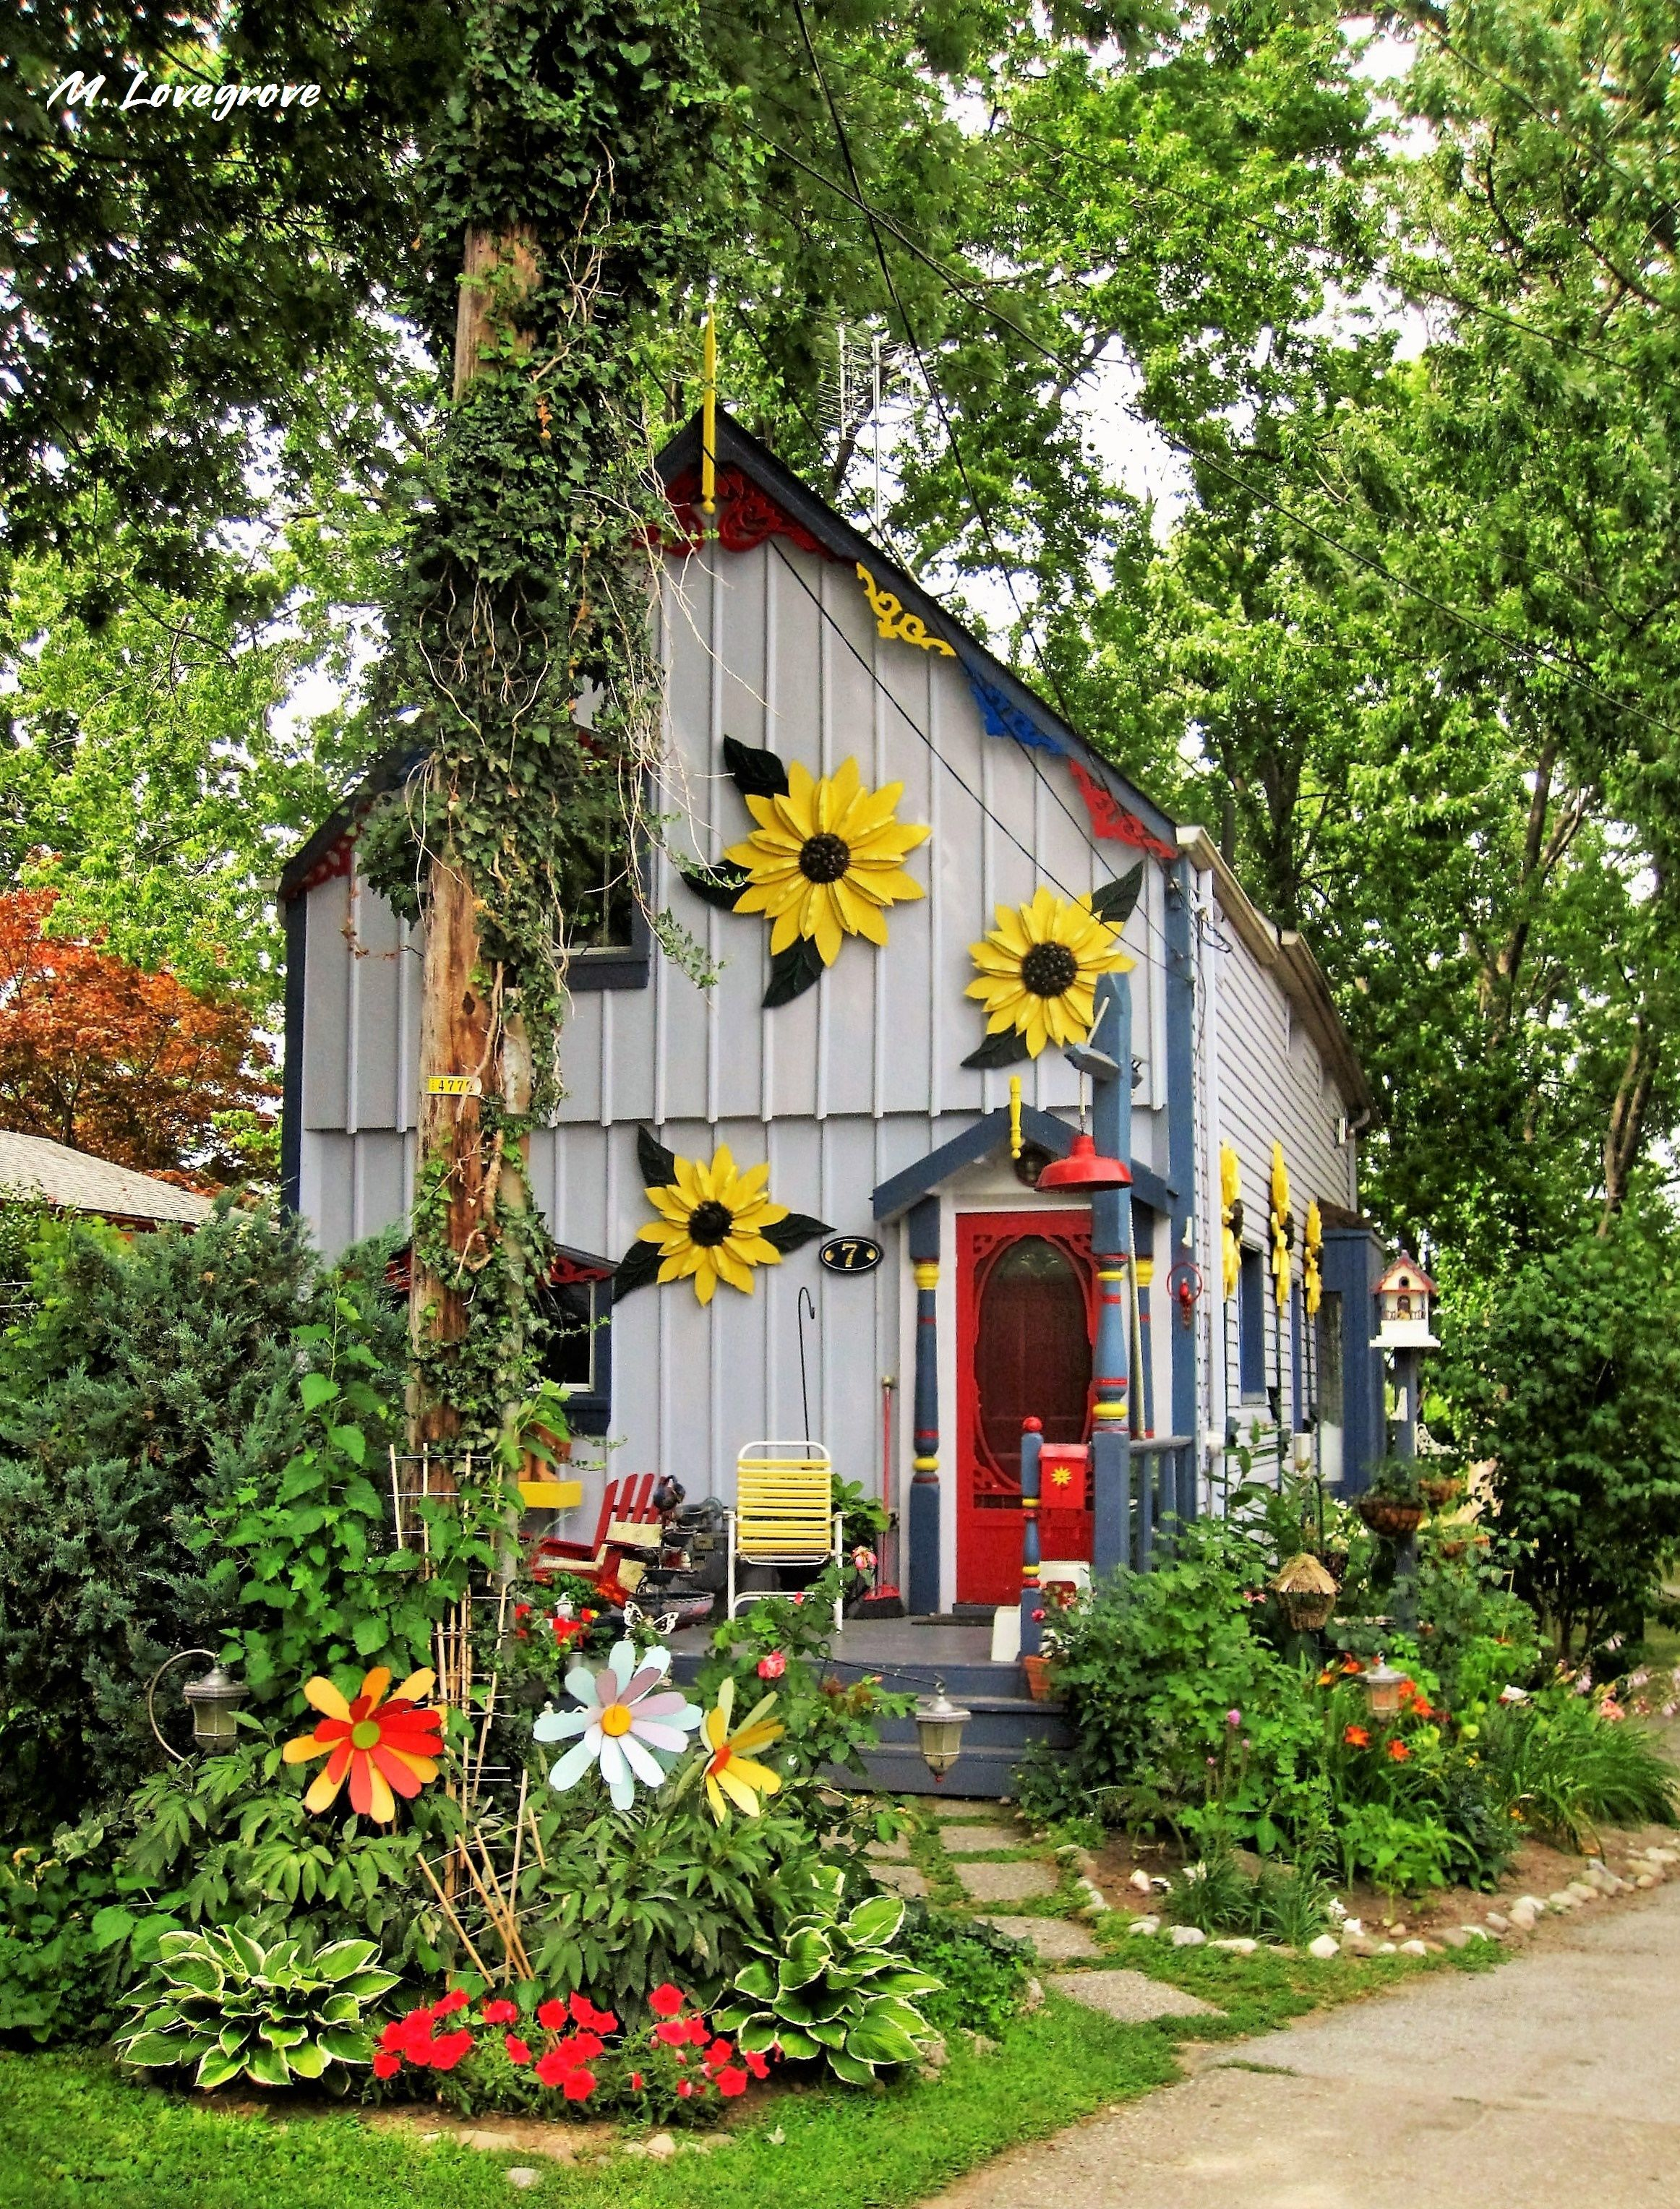 Pin by Victoria Long on fairy tale House colors, Unusual